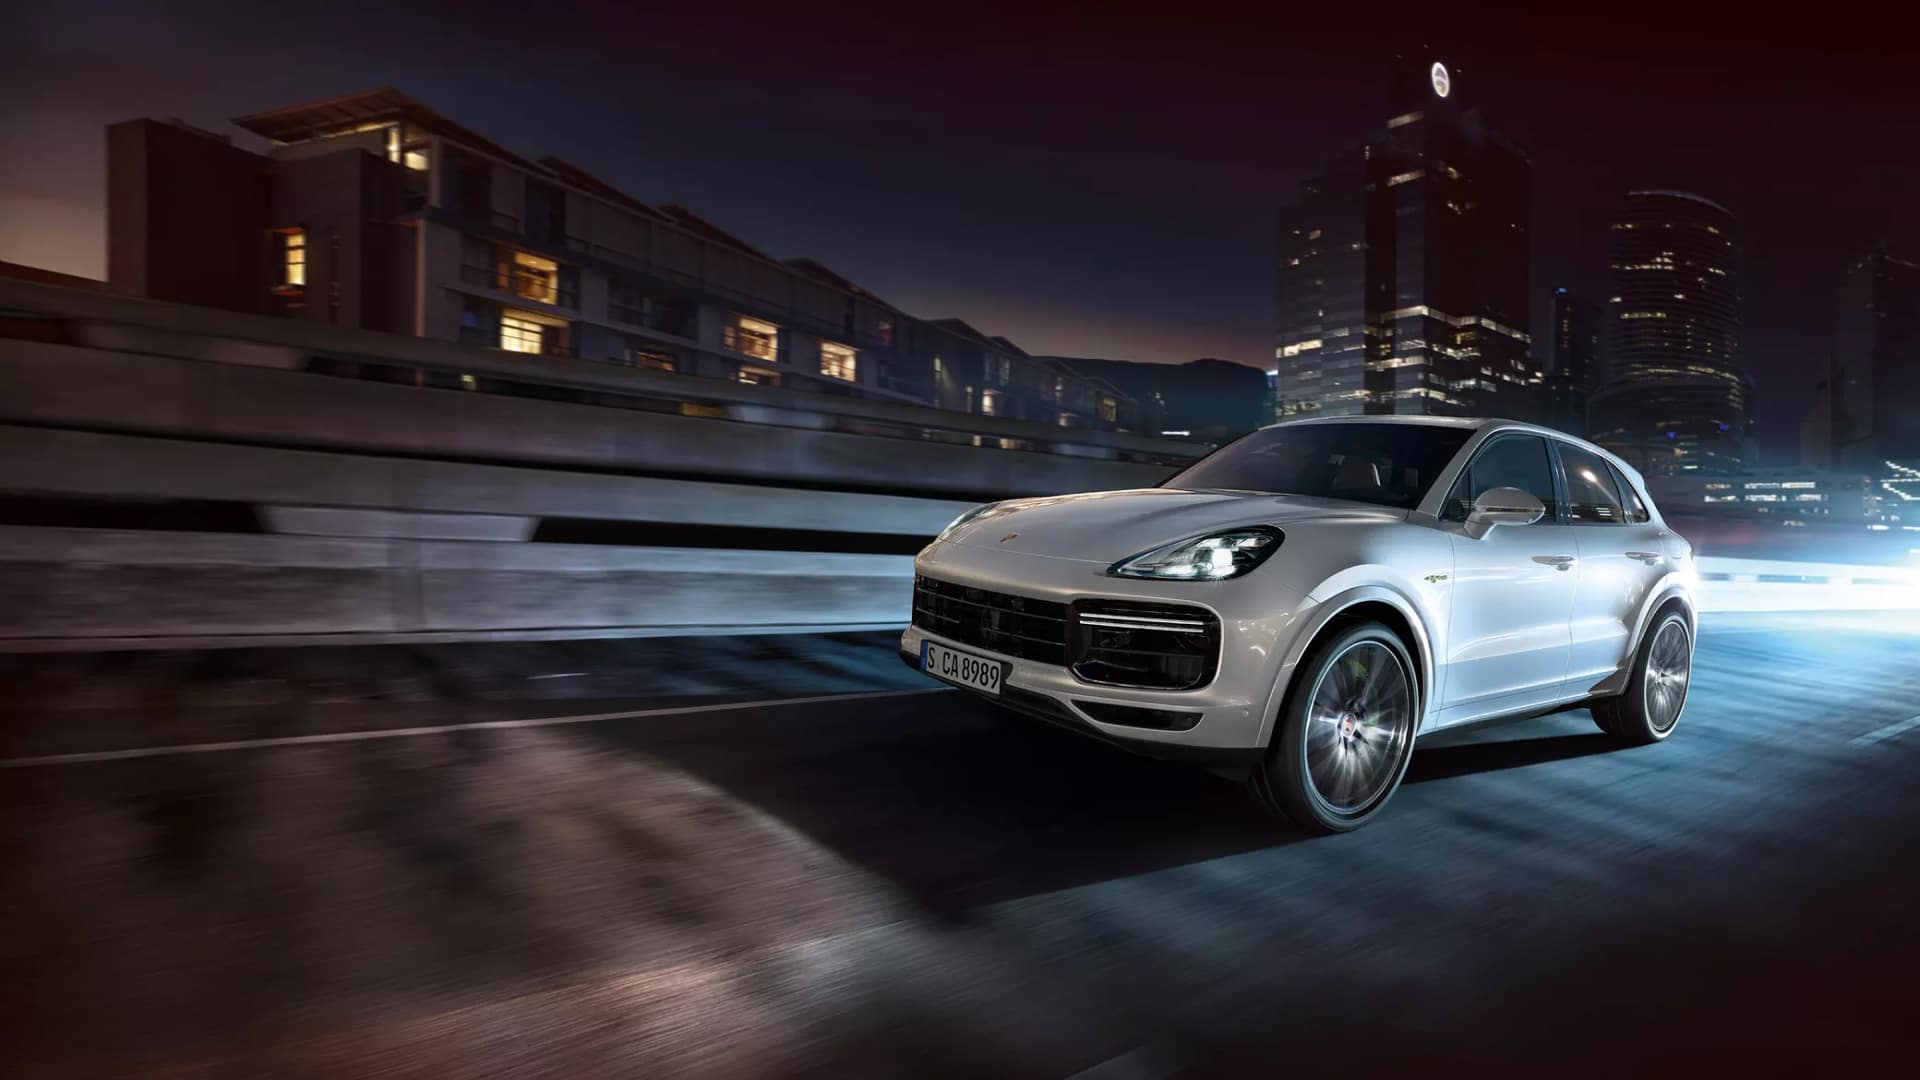 2020 Porsche Cayenne For Sale In Los Angeles, CA